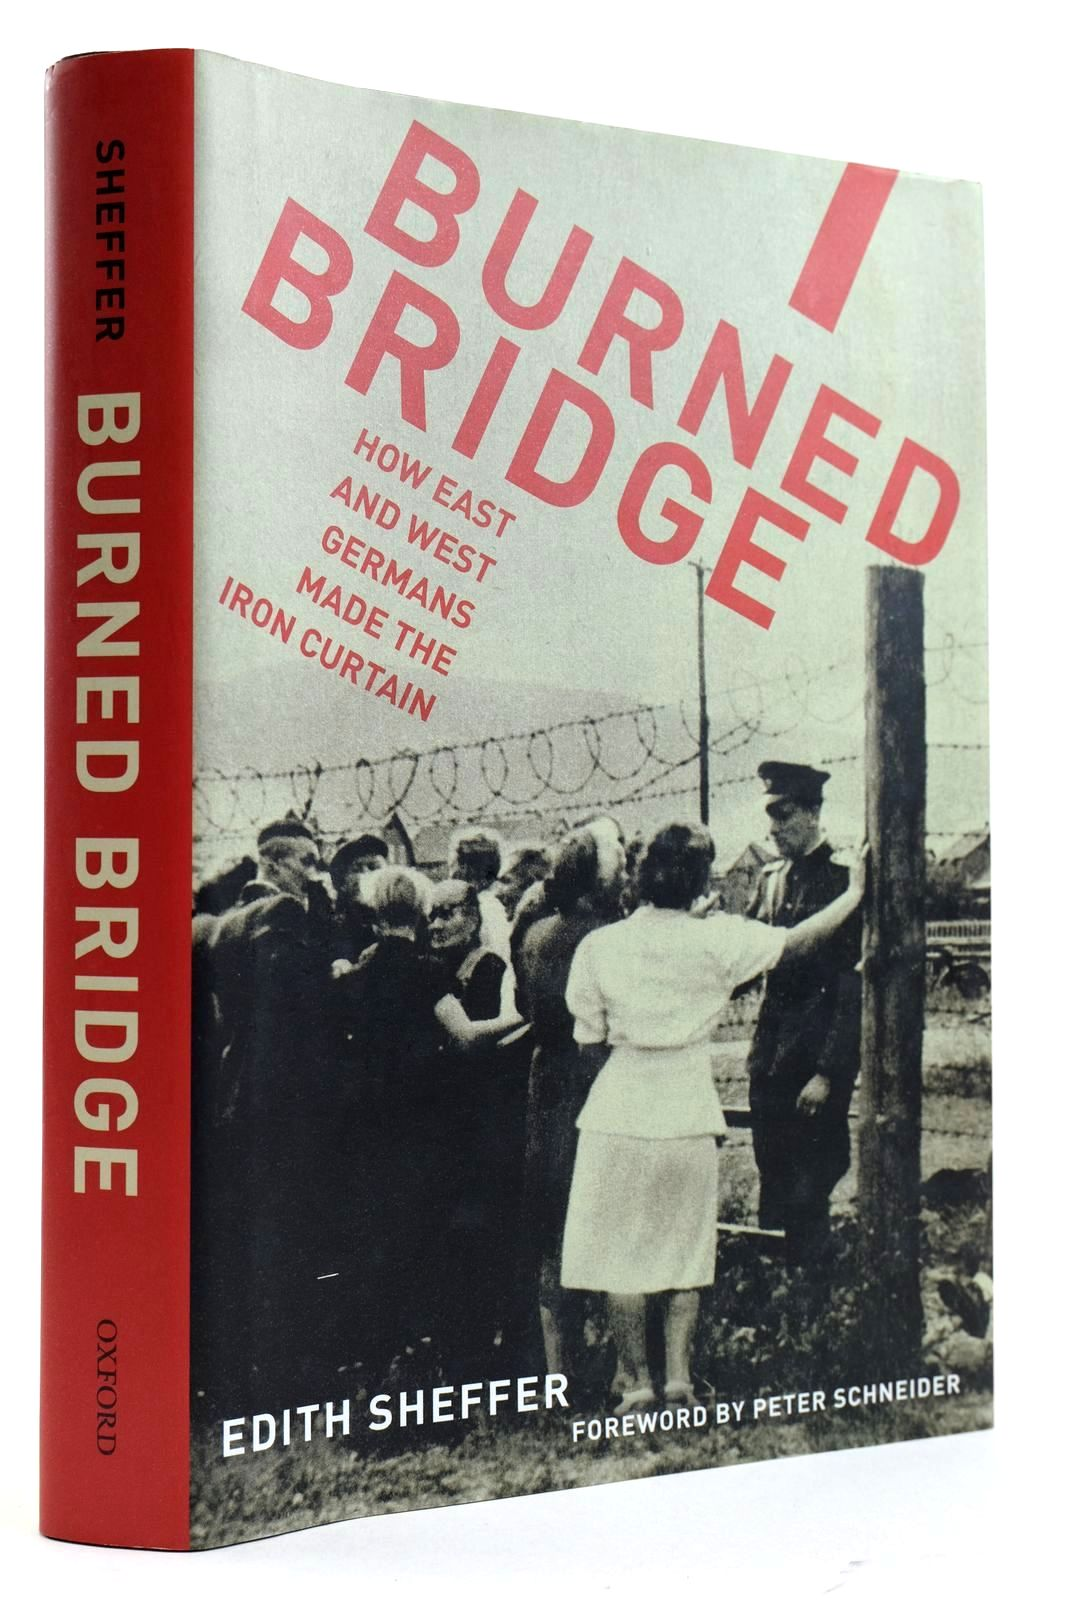 Photo of BURNED BRIDGE HOW EAST AND WEST GERMANS MADE THE IRON CURTAIN written by Sheffer, Edith published by Oxford University Press (STOCK CODE: 2132511)  for sale by Stella & Rose's Books